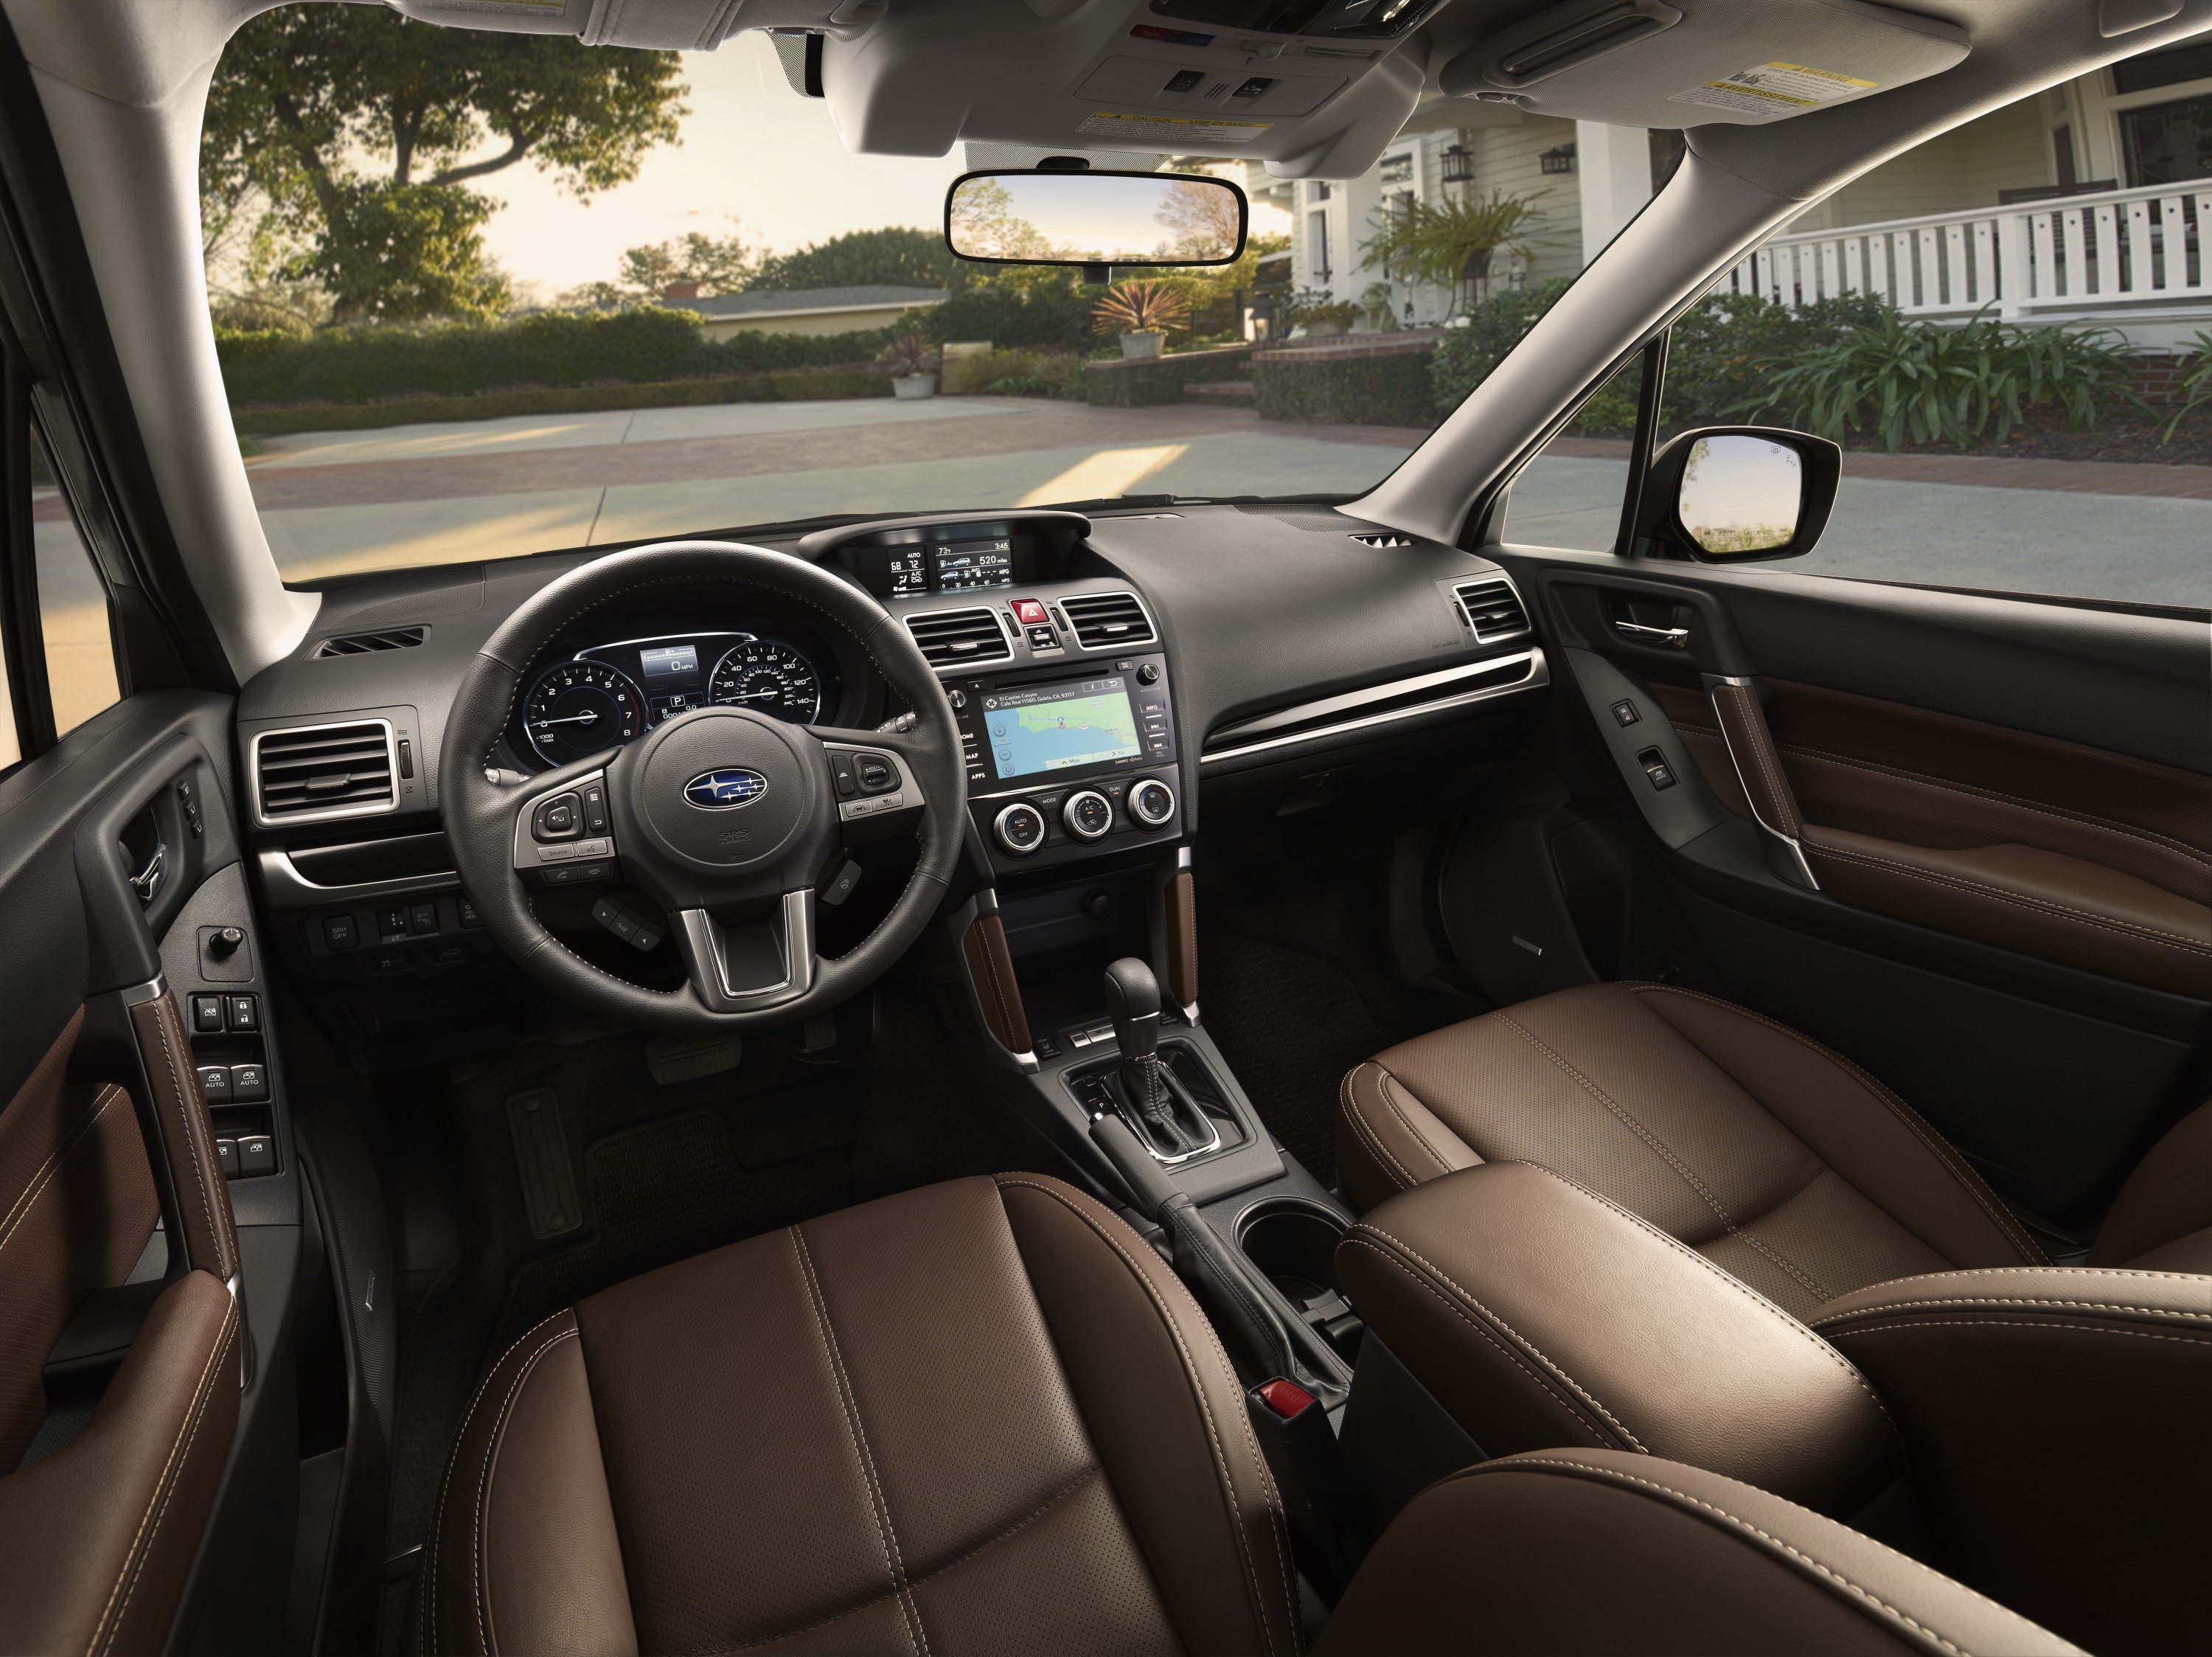 The Forrester Can Also Improve Its Cabin Which Look A Bit Basic In Terms Of Design I Was More Impressed With Brown Leather Upholstery Found